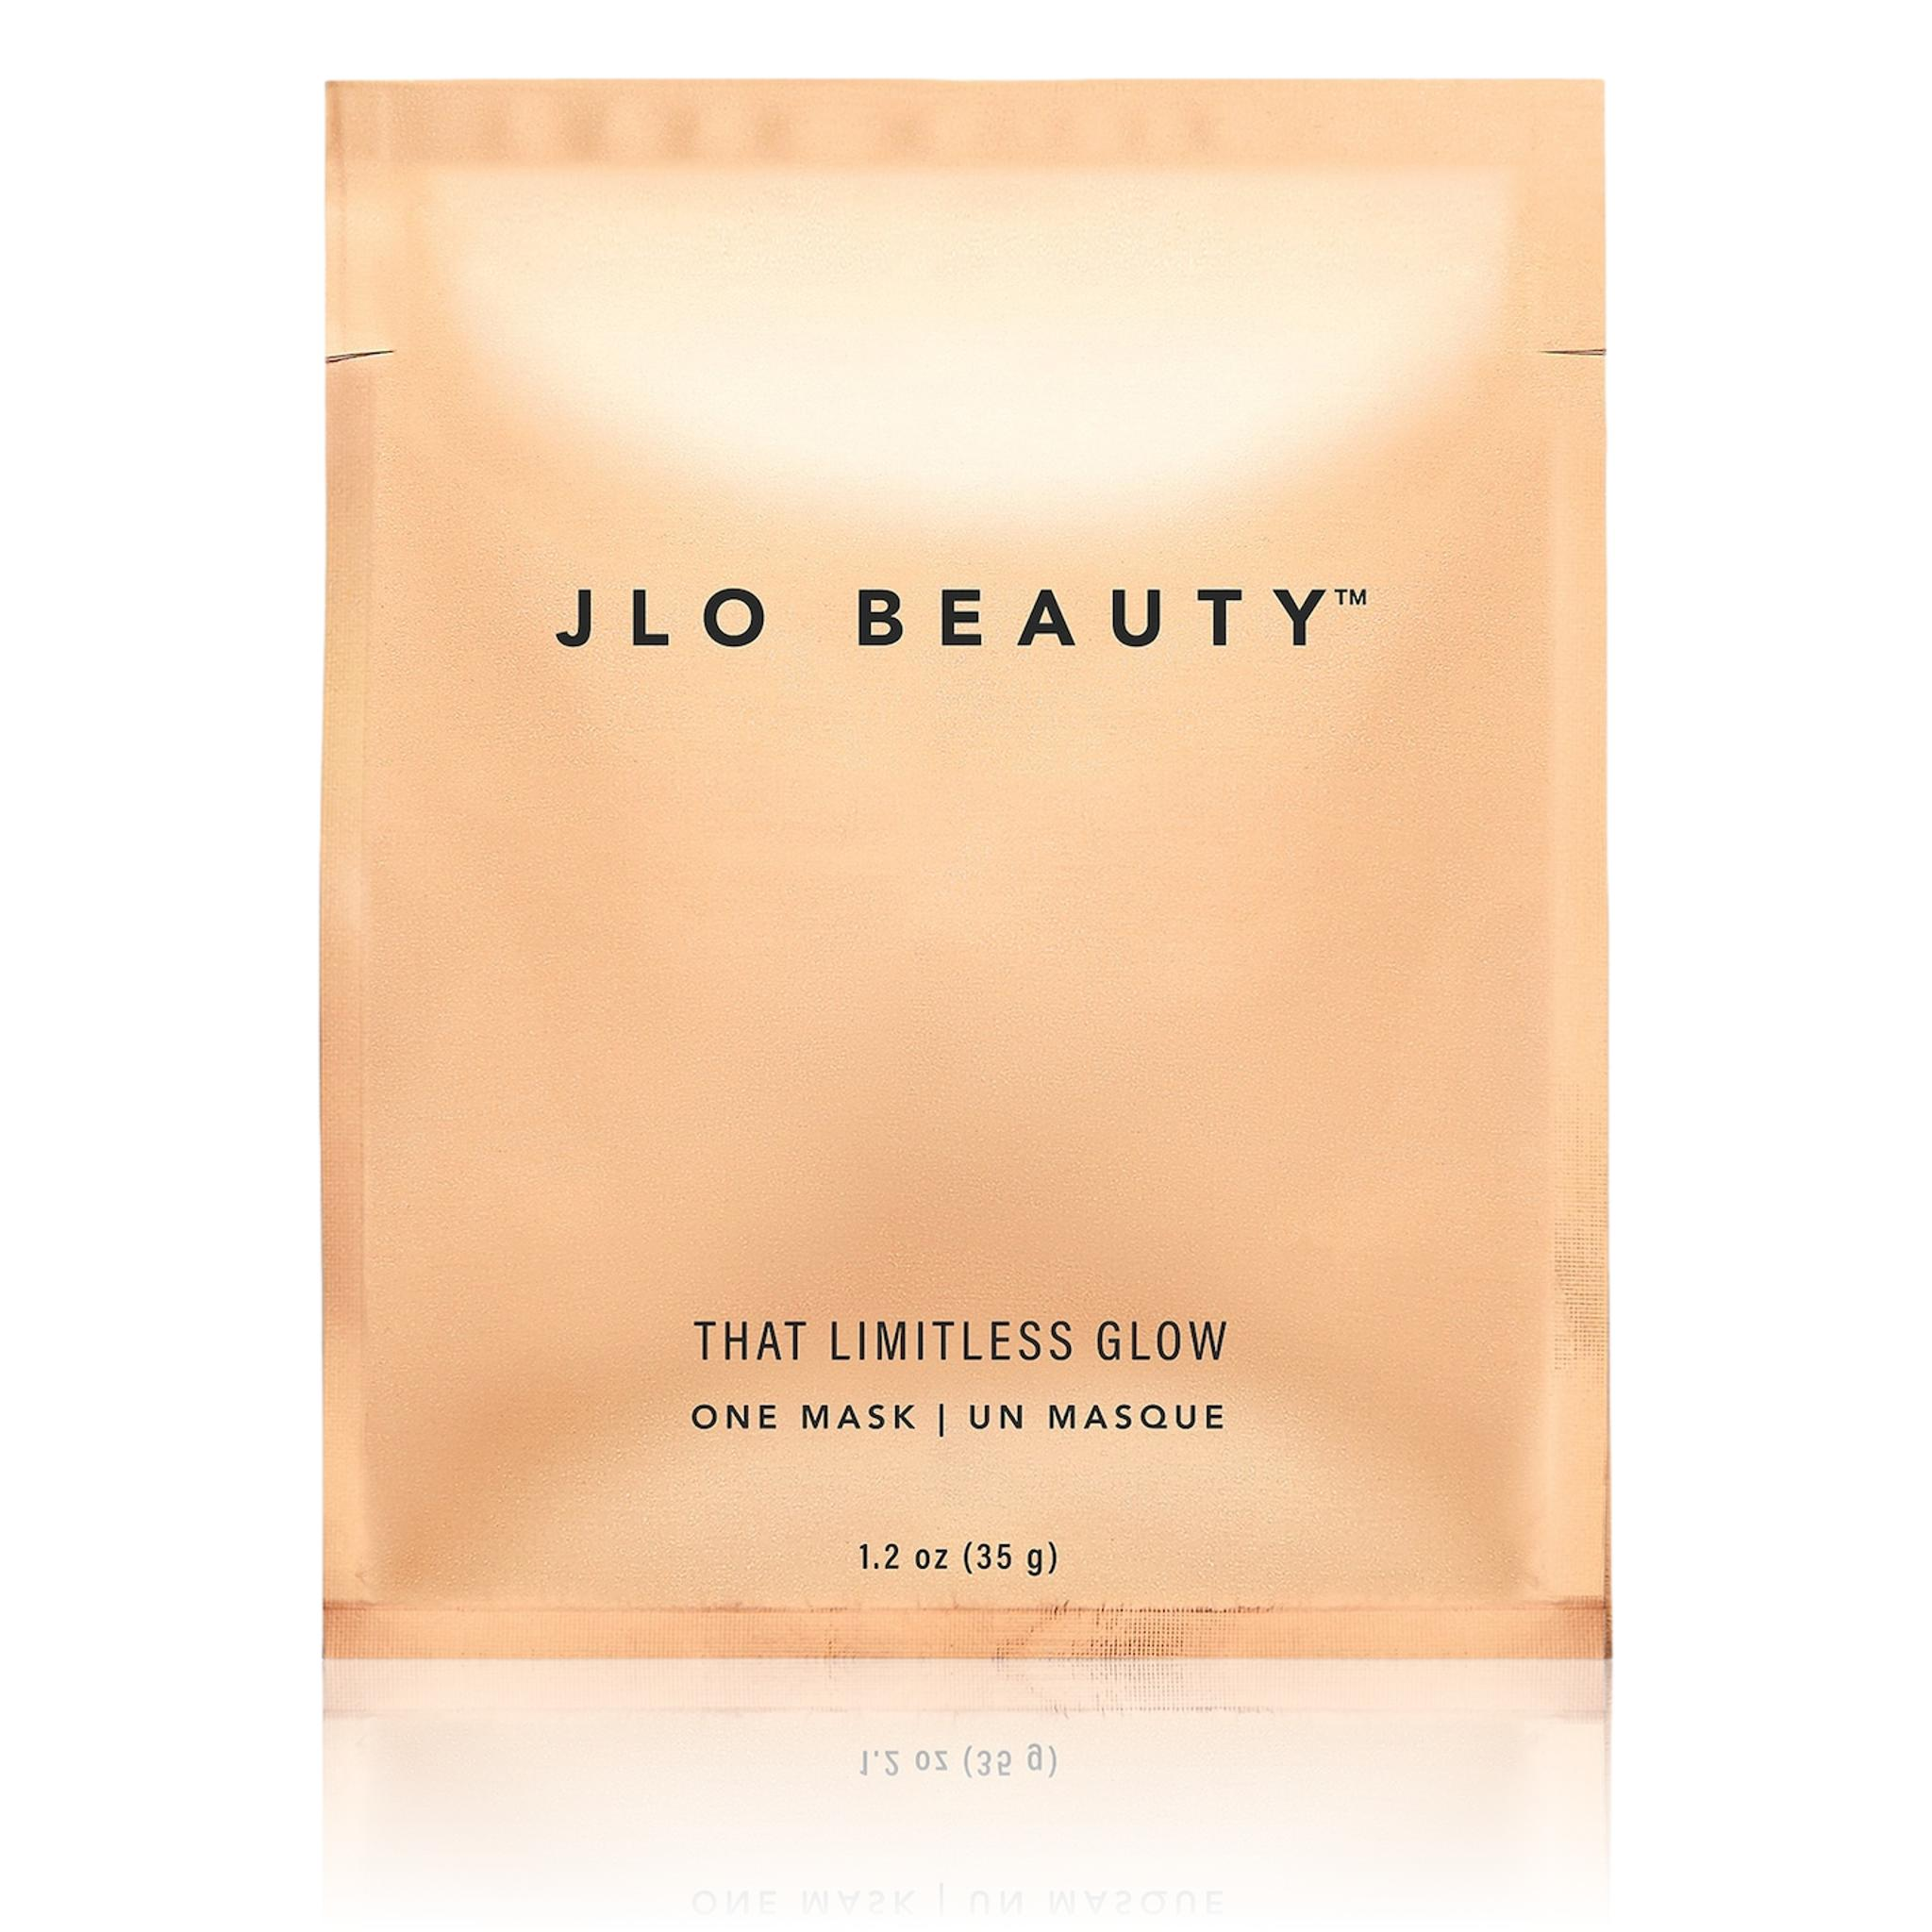 JLo Beauty That Limitless Glow Sheet Mask, 35g